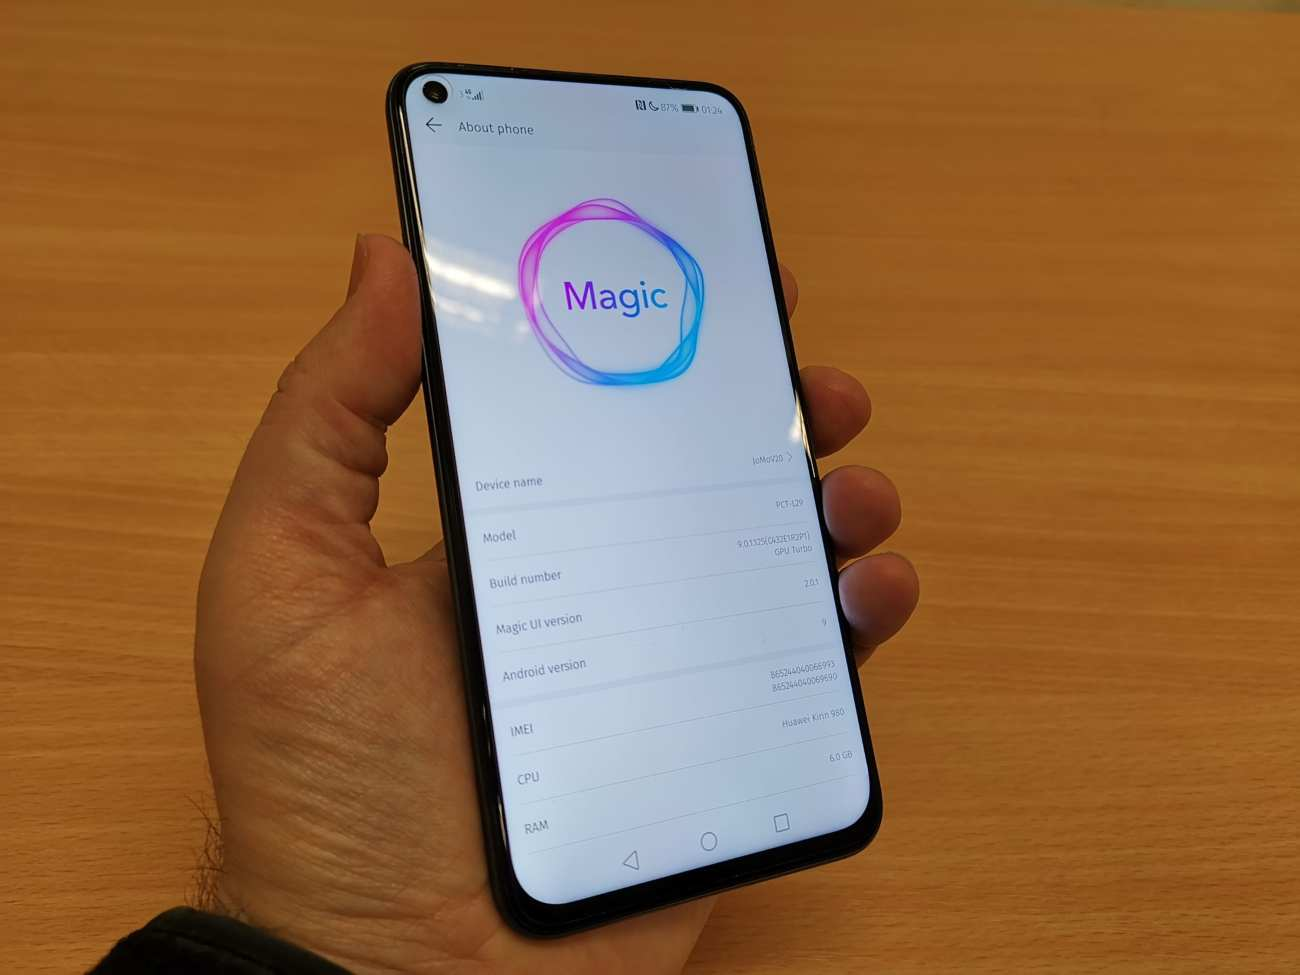 Honor View 20 with Magic UI V2